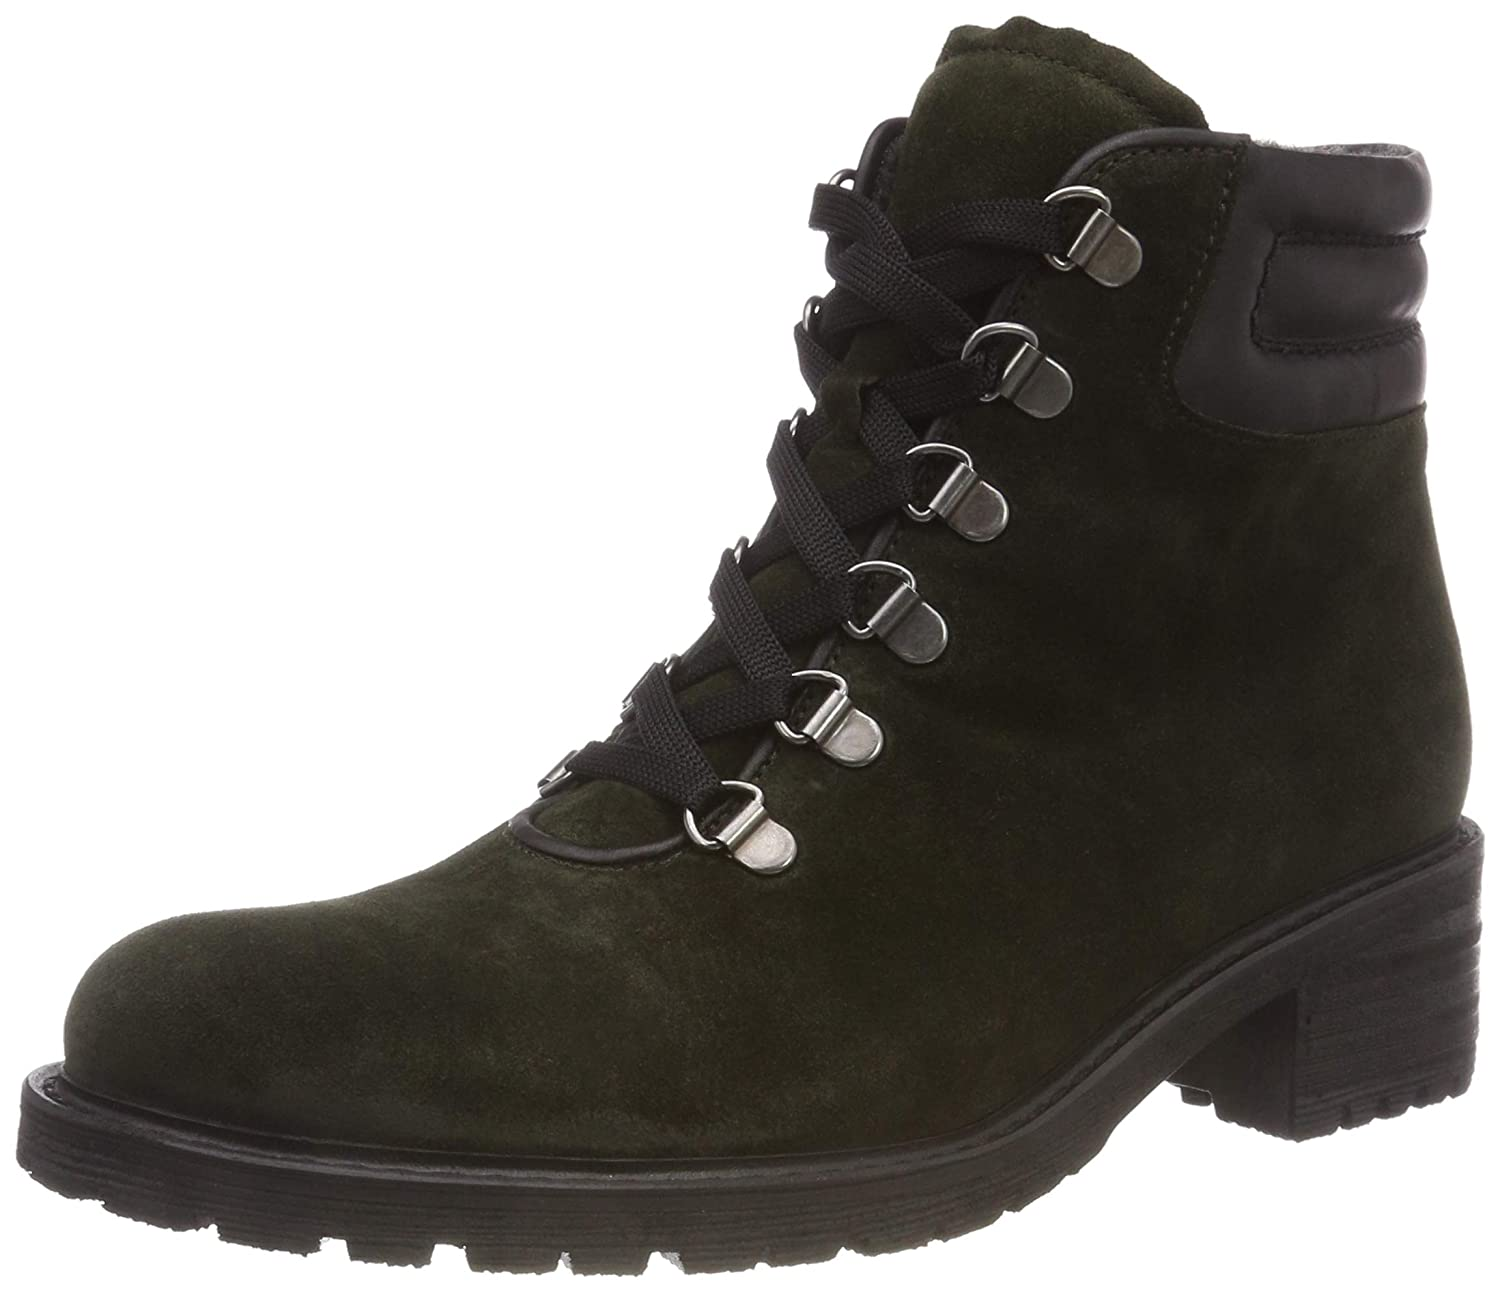 Gabor Gabor Shoes 1410 Comfort Basic, Botines Femme Vert (Bottle (Mel.) Basic, 34) 1dc2df7 - latesttechnology.space